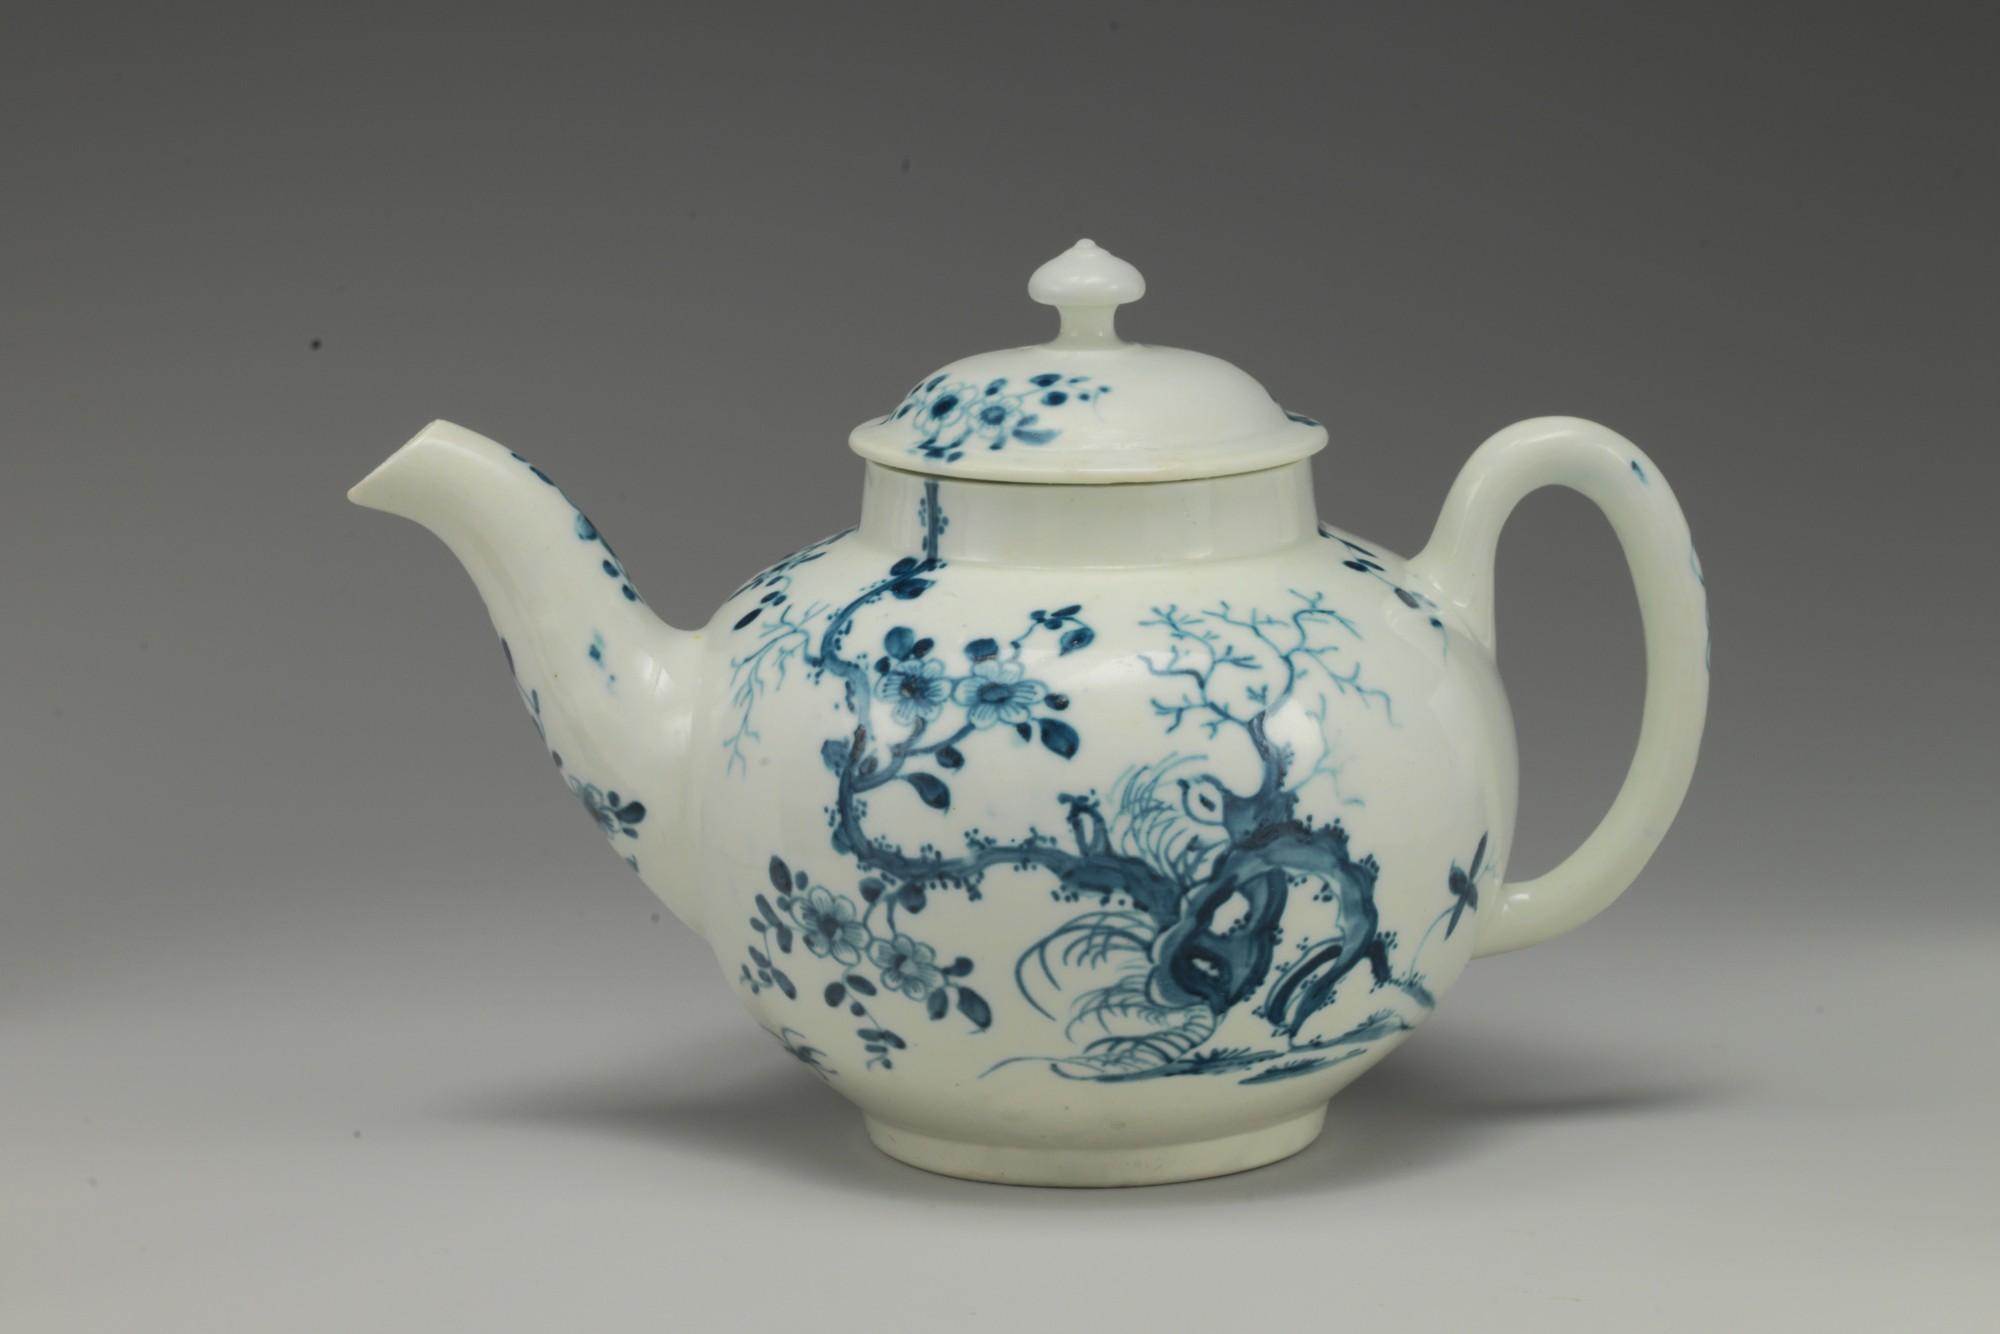 Worcester factory (British, 1751–2008), Teapot, ca. 1770. Soft-paste porcelain in blue and white.